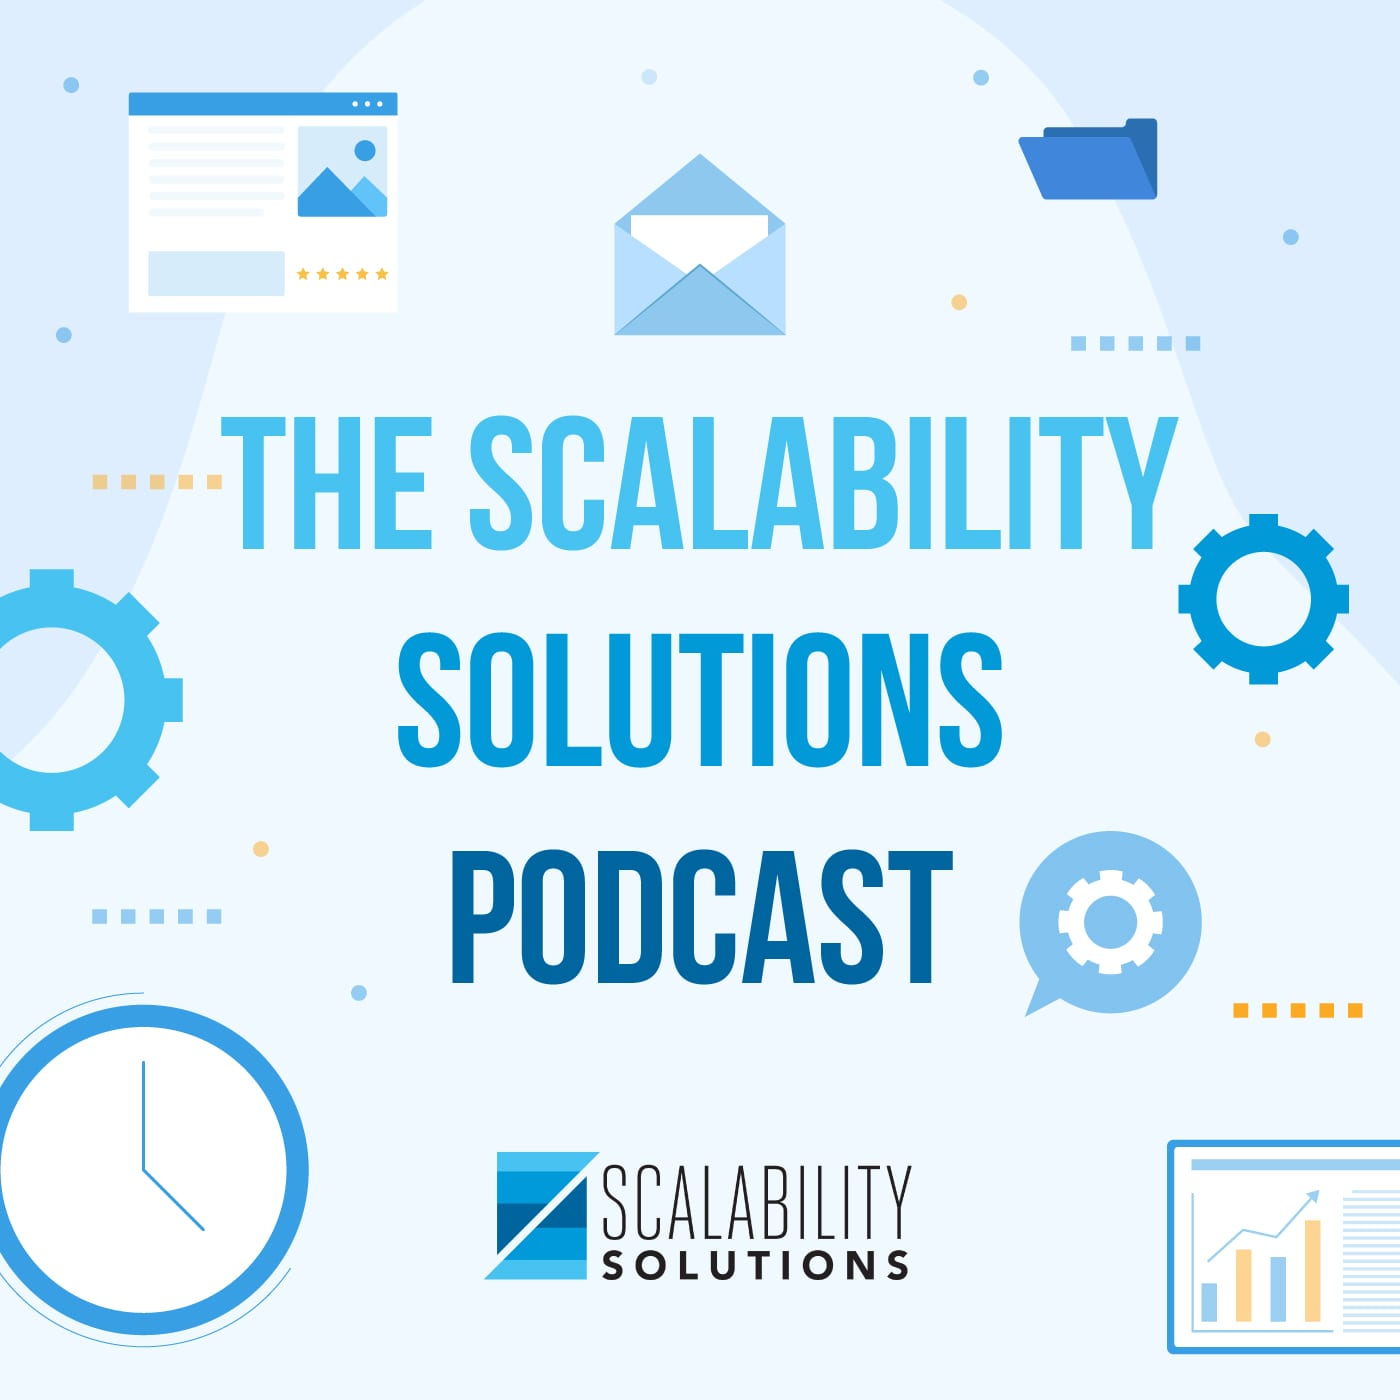 The Scalability Solutions Podcast